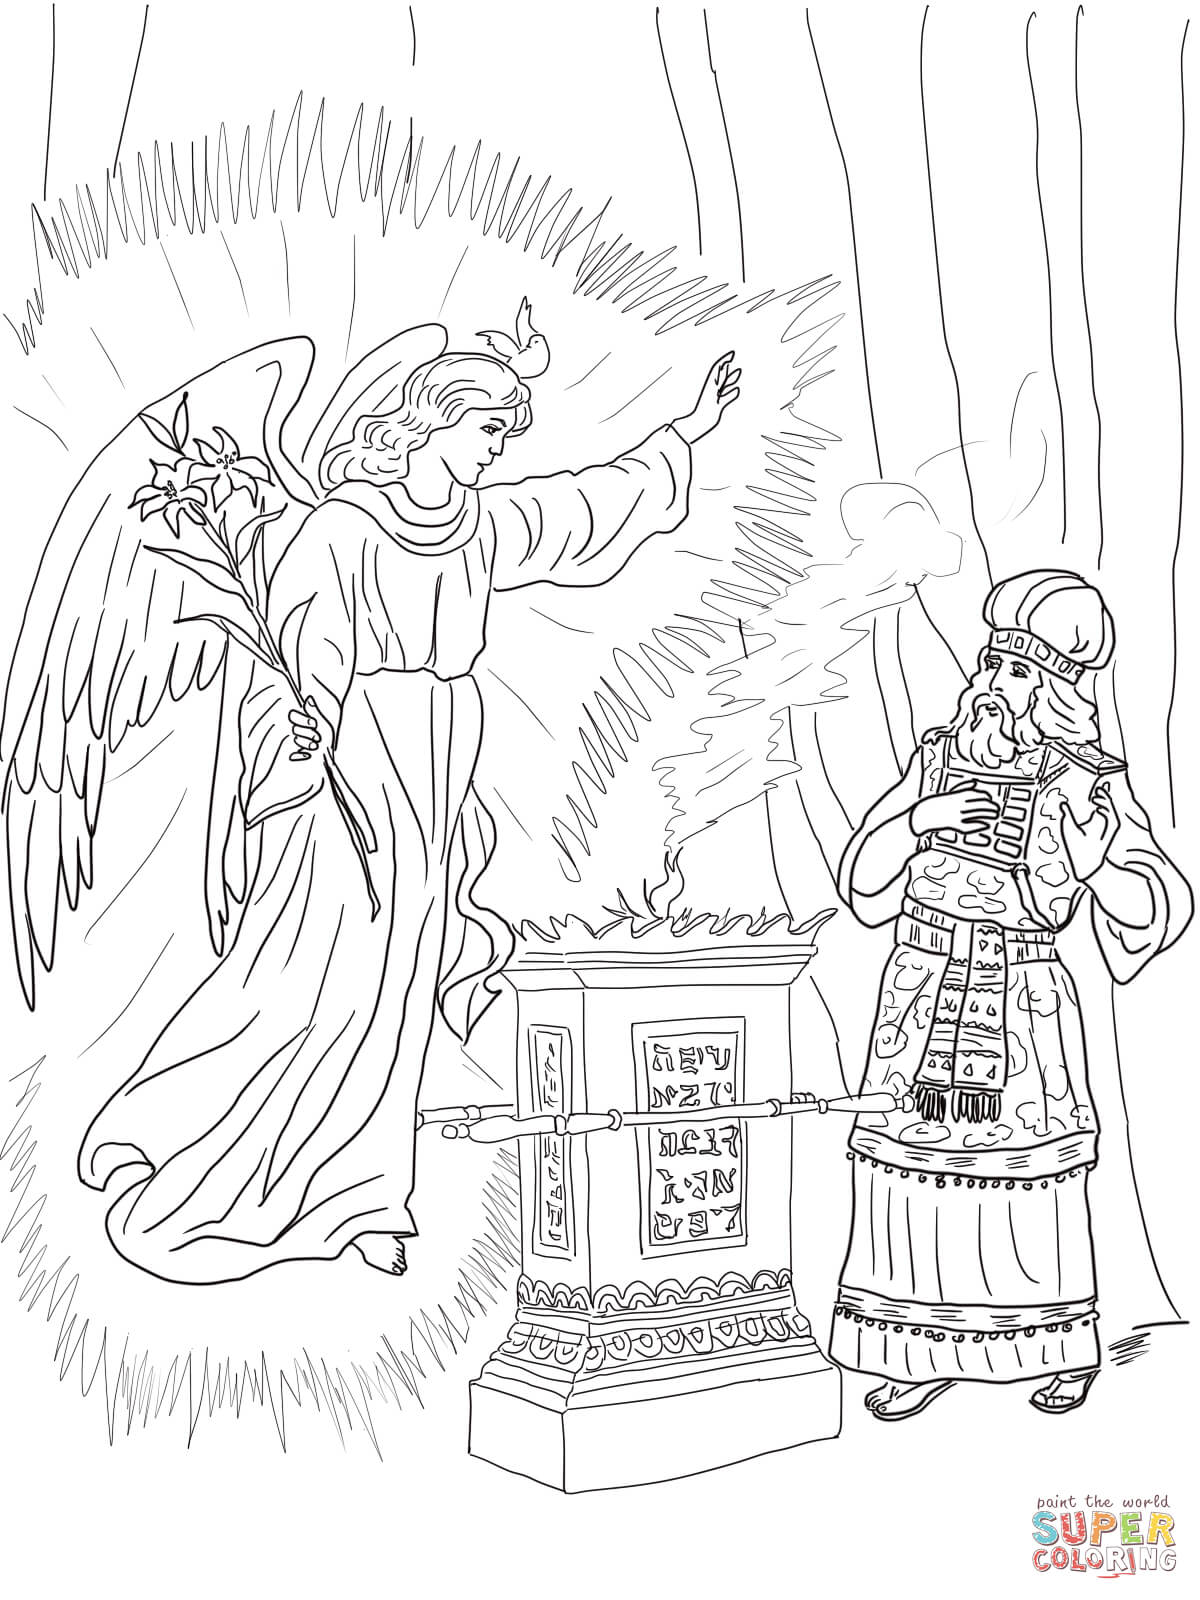 elizabeth bible coloring pages - photo#23